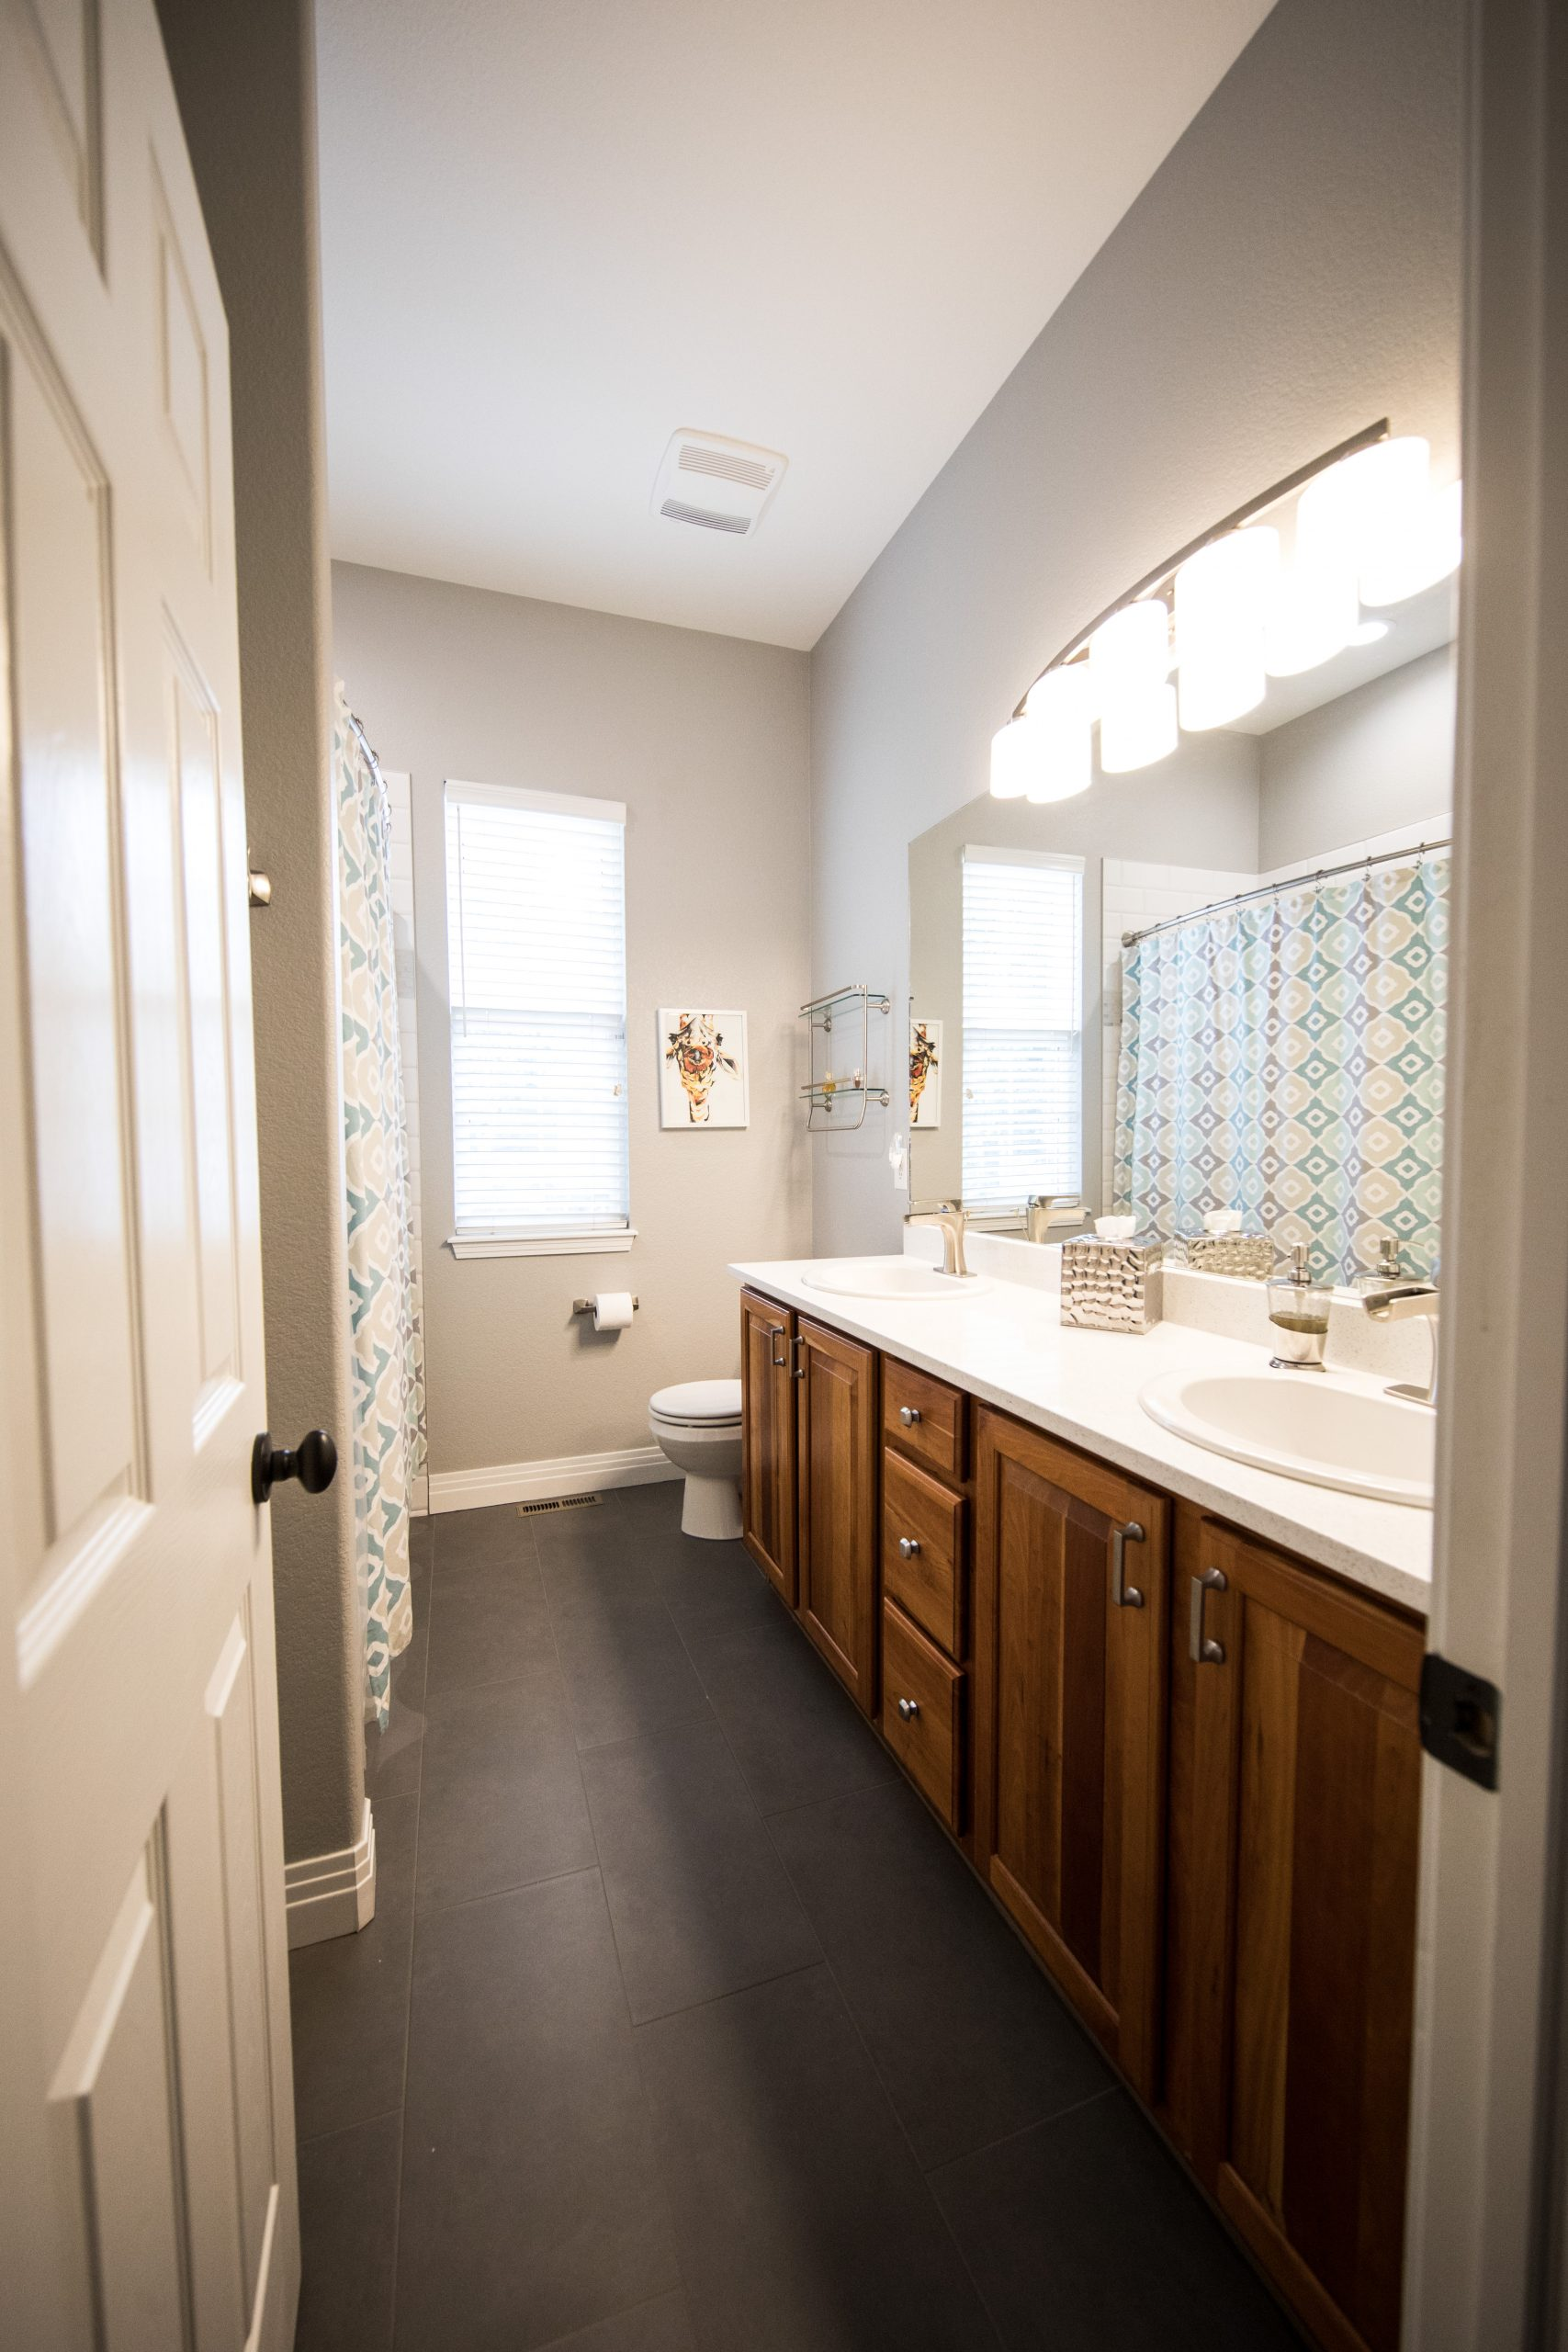 Newly completed bathroom renovation project